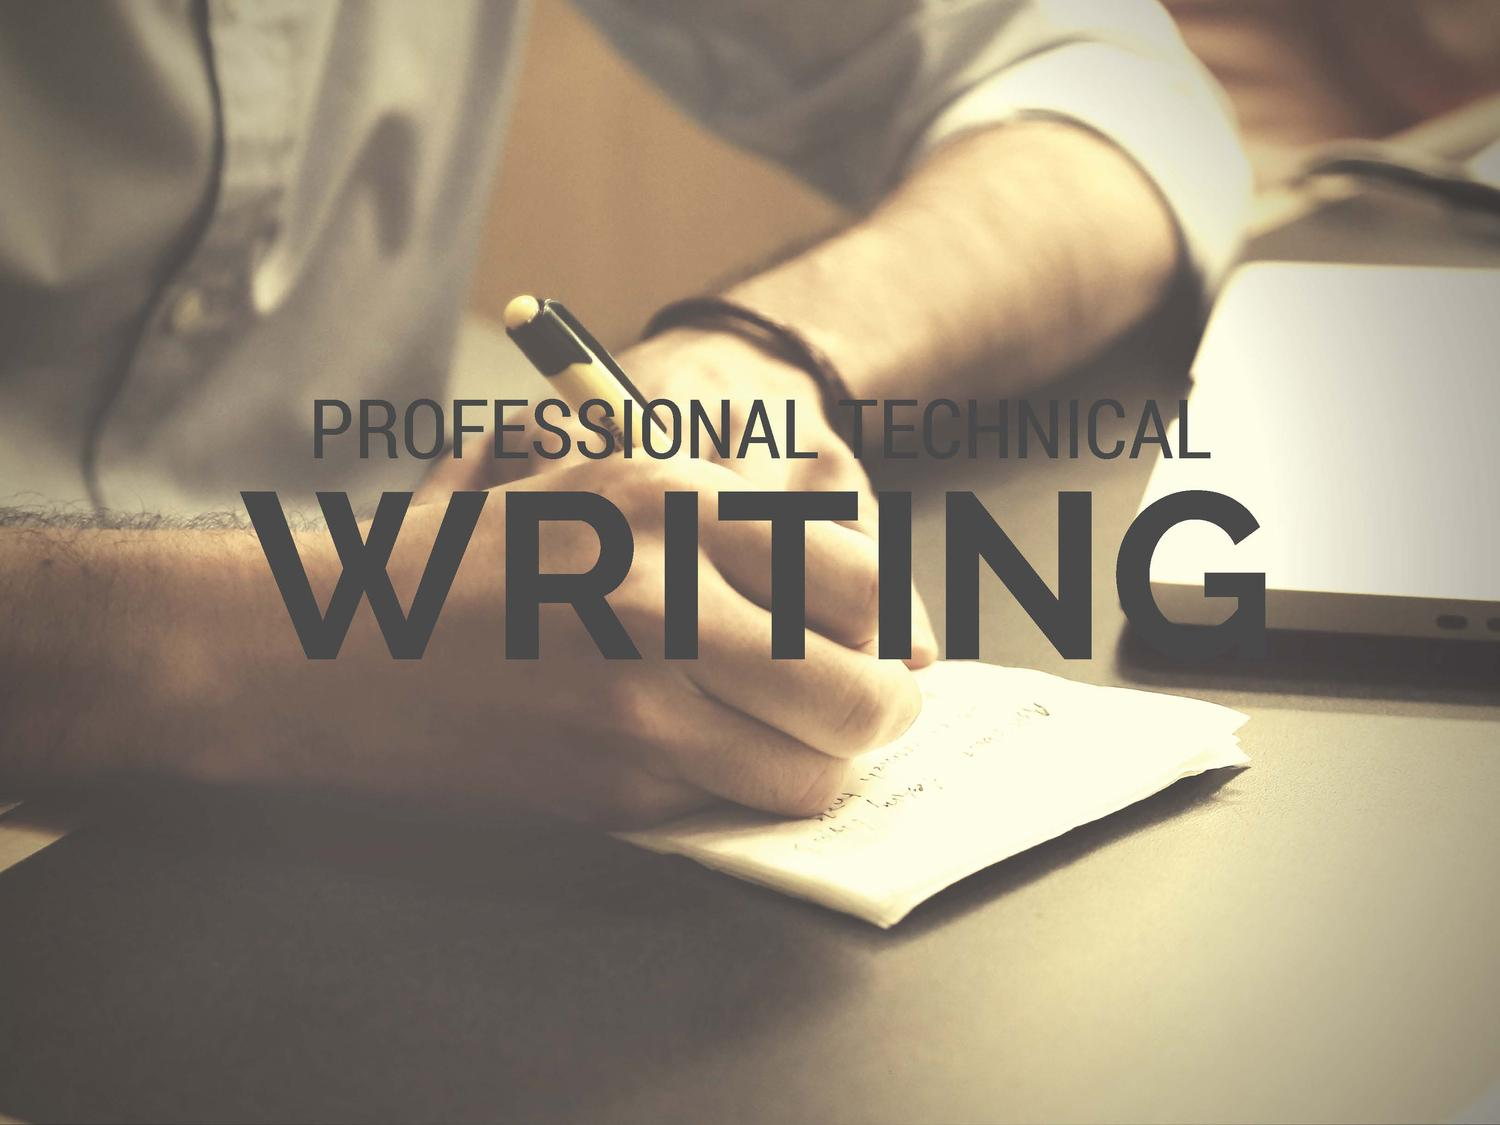 Technical writing services purposes